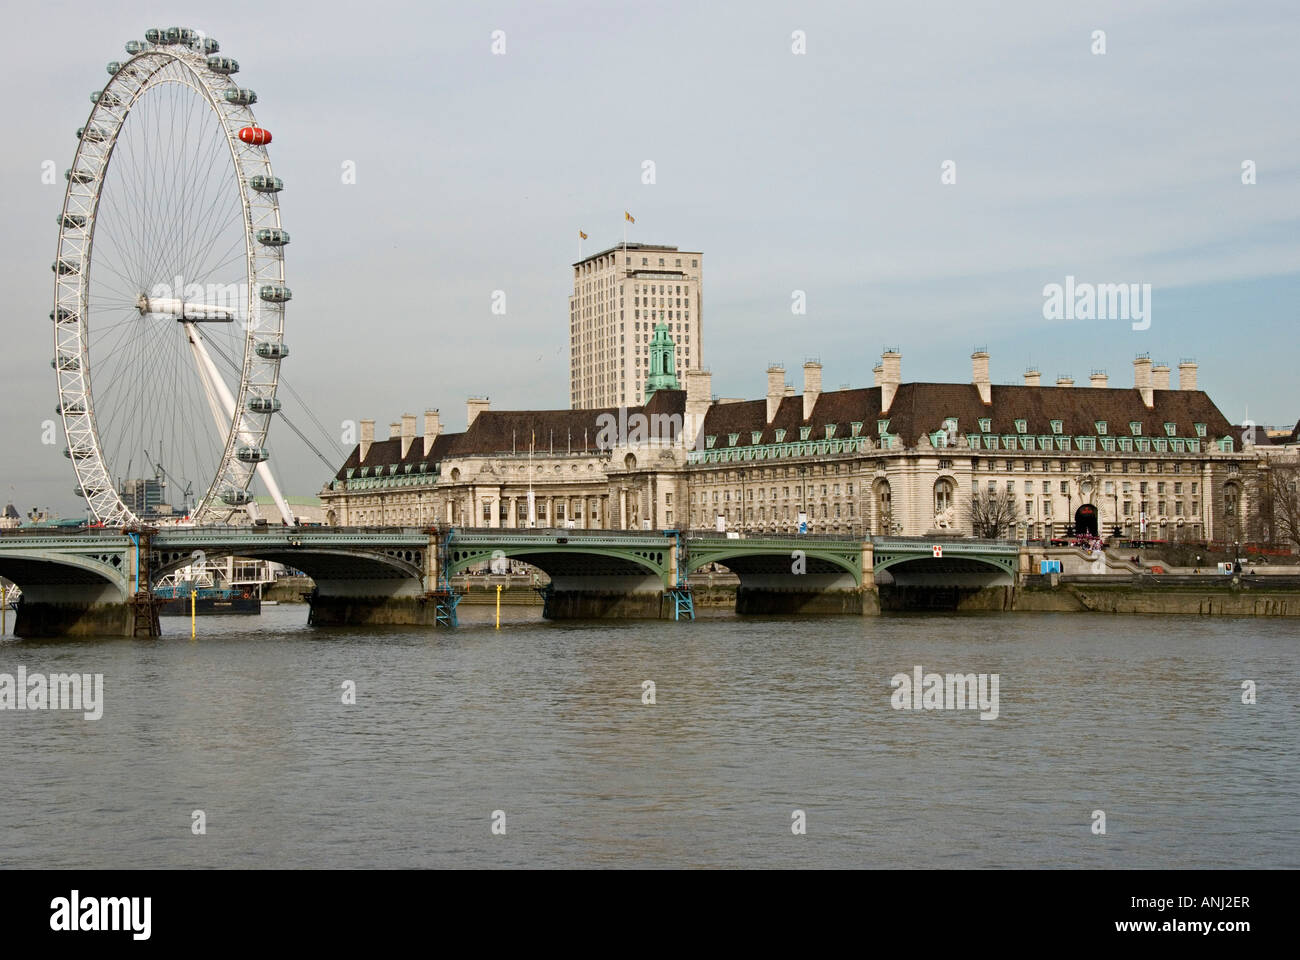 The London Eye and the old County Hall building, with the Shell Tower in the background, seen from across the River - Stock Image